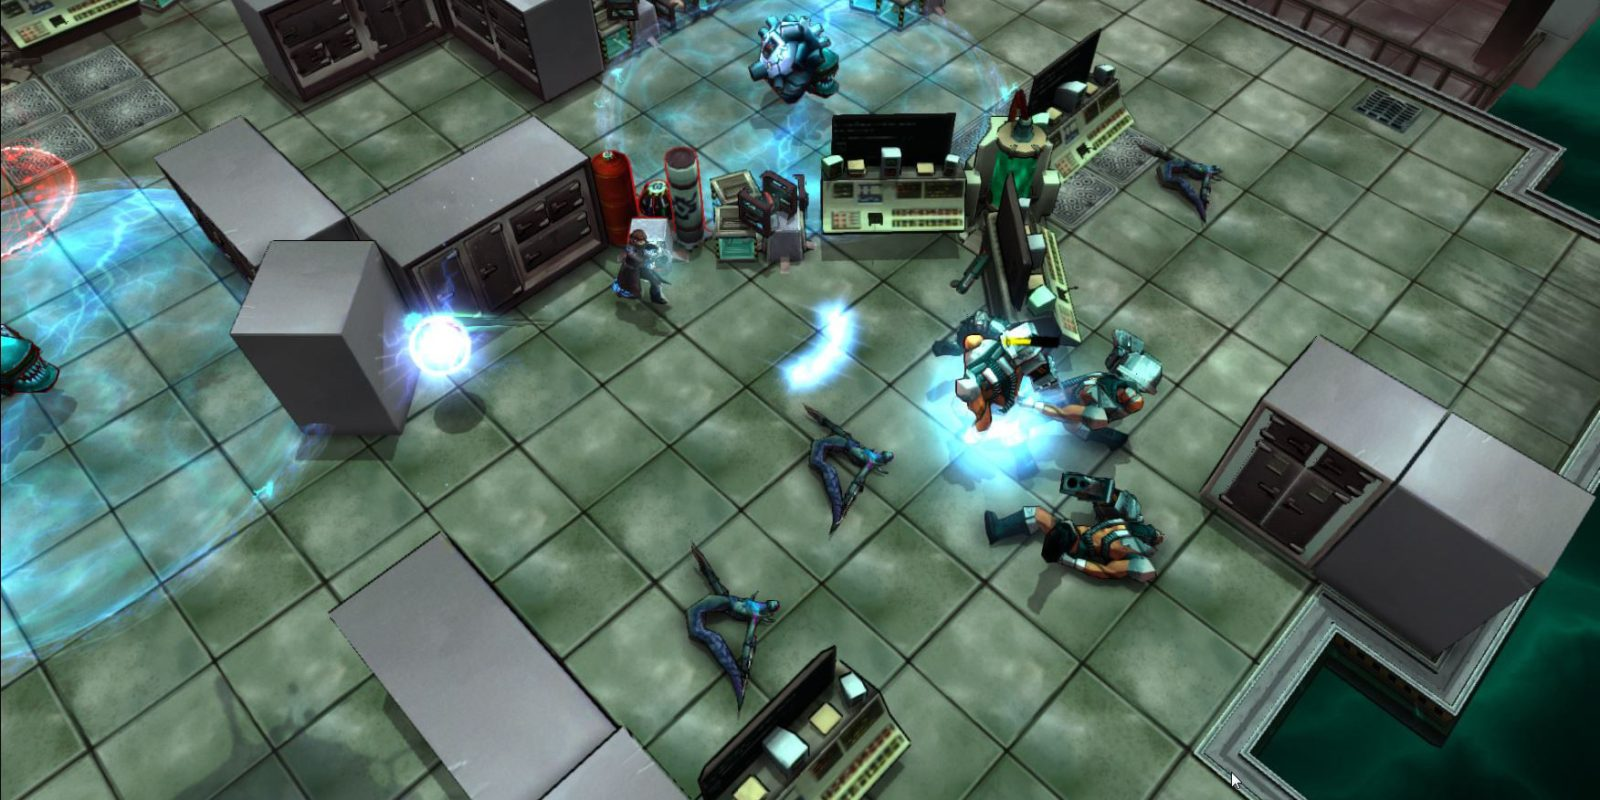 Cyberpunk top-down shooter Leap of Fate now just $2 on iOS